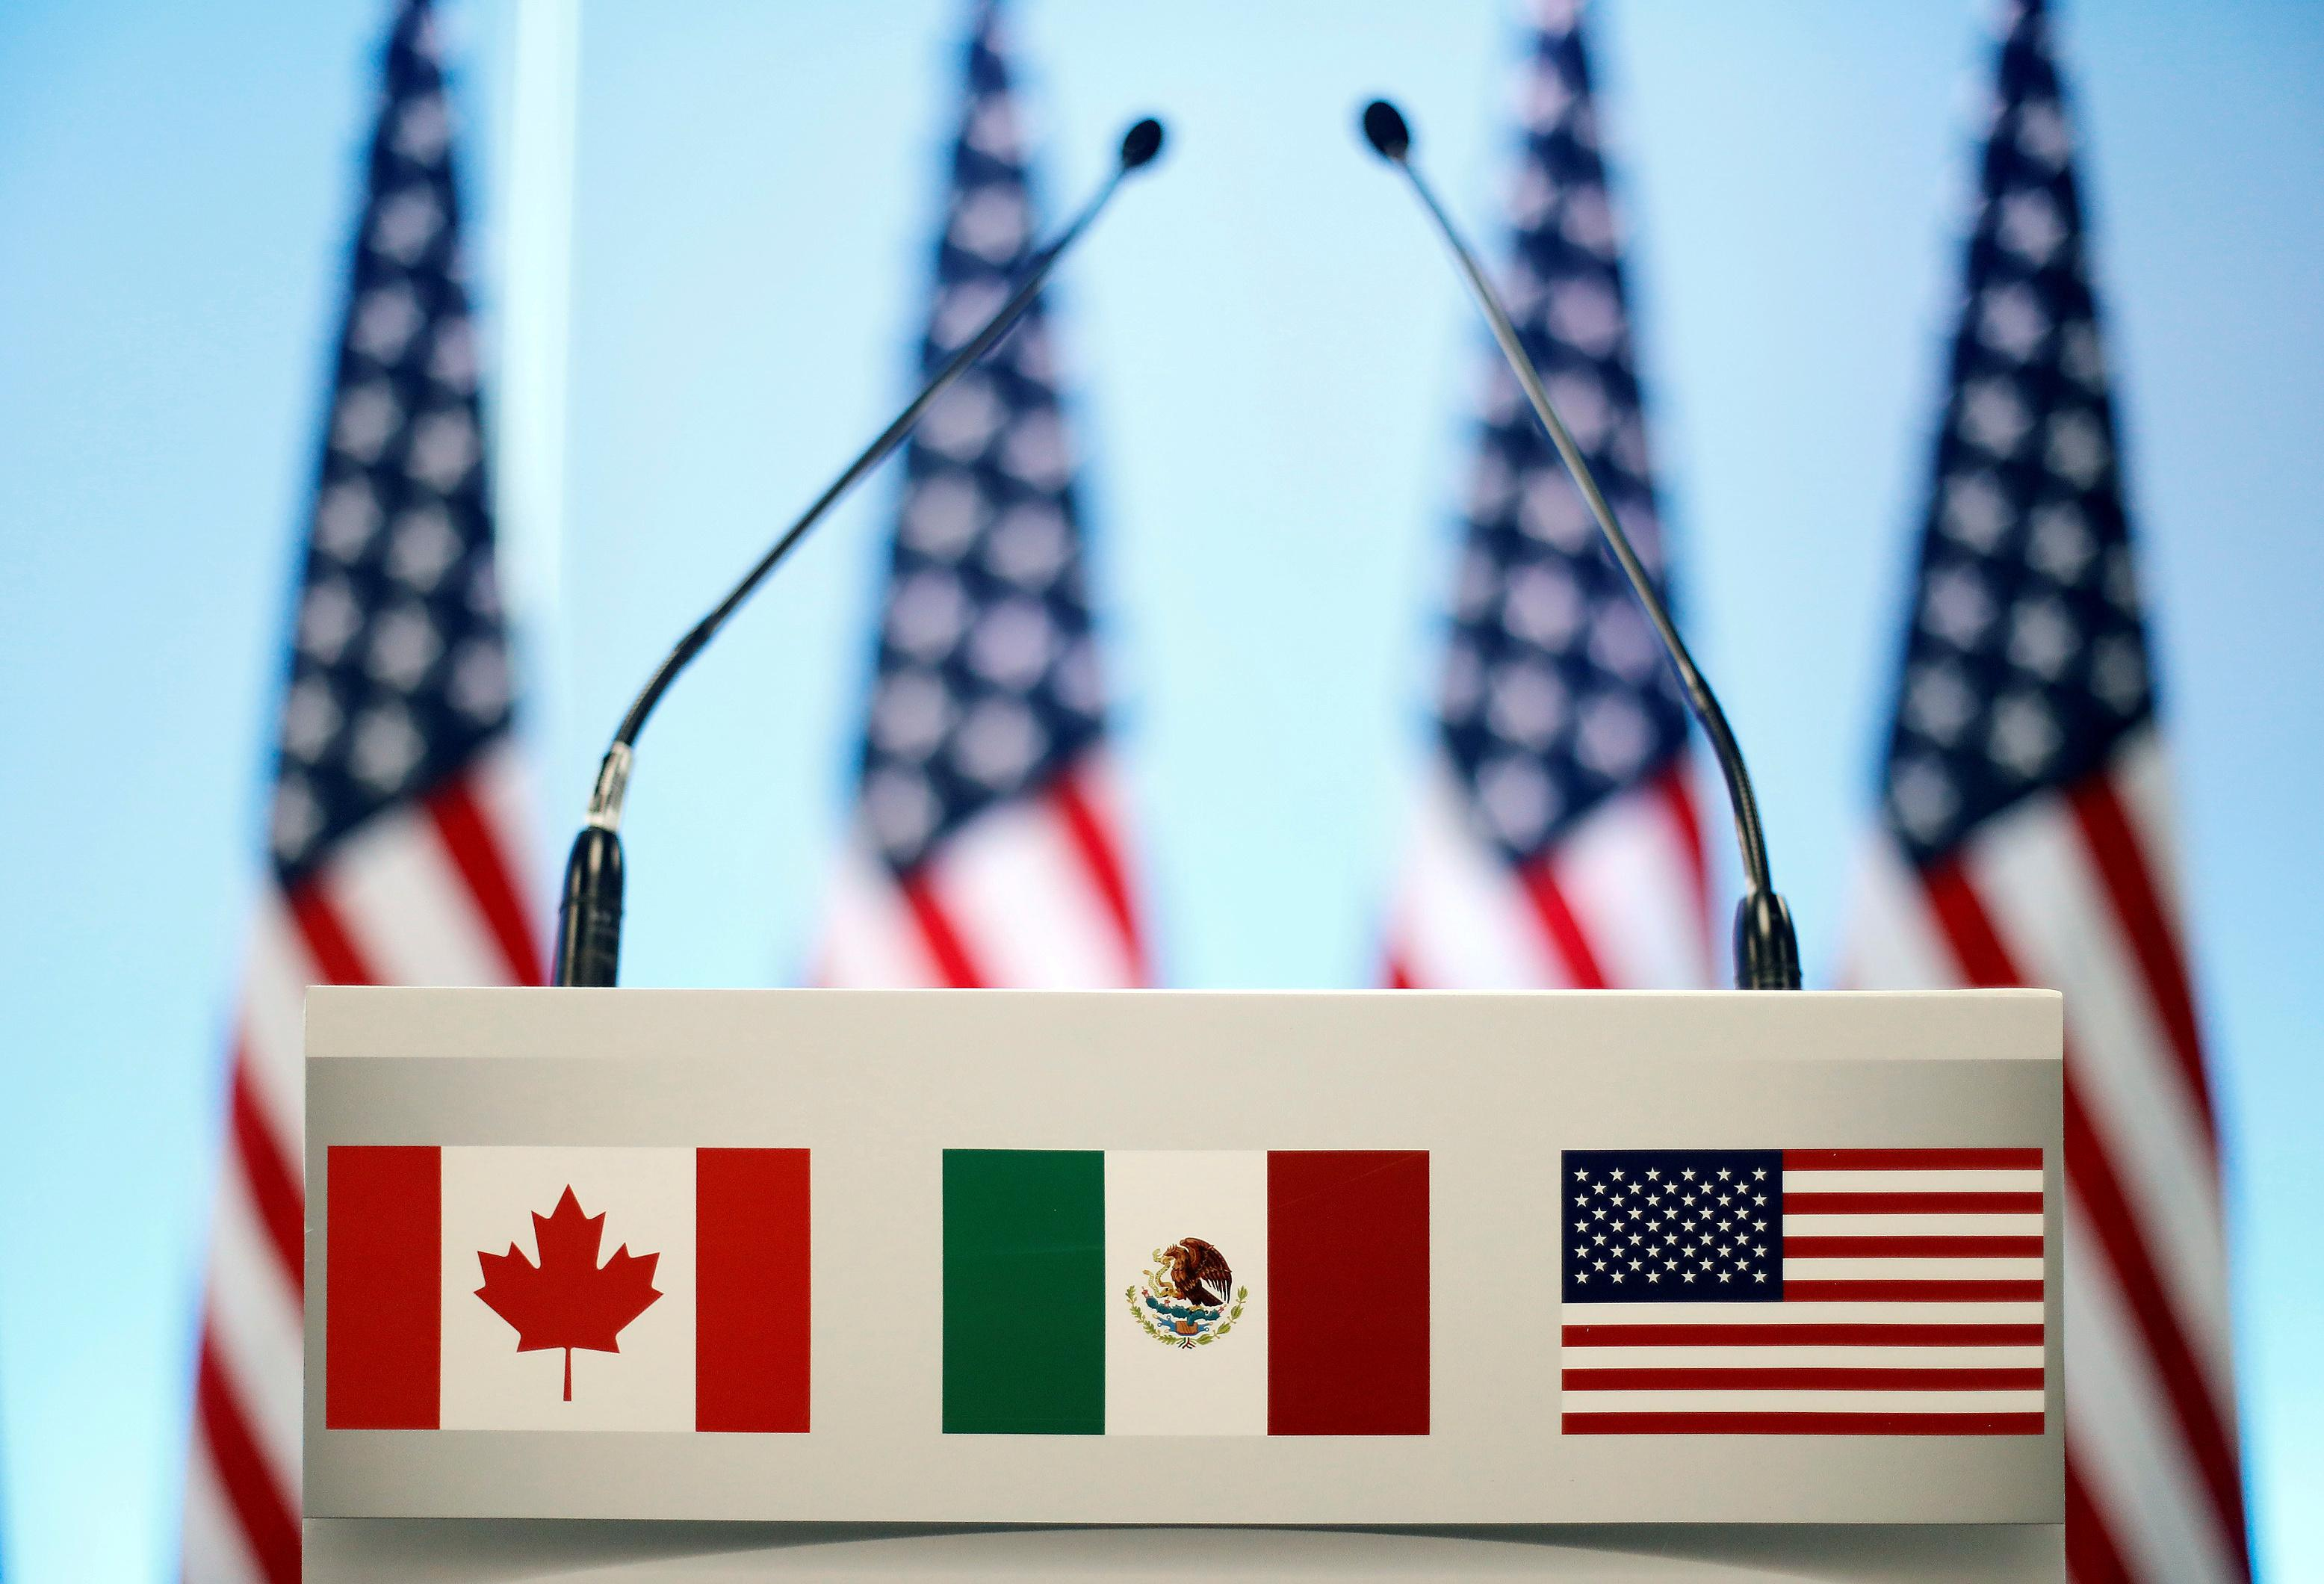 Canada moves to ratify North American trade deal ahead of visit by U.S. vice president